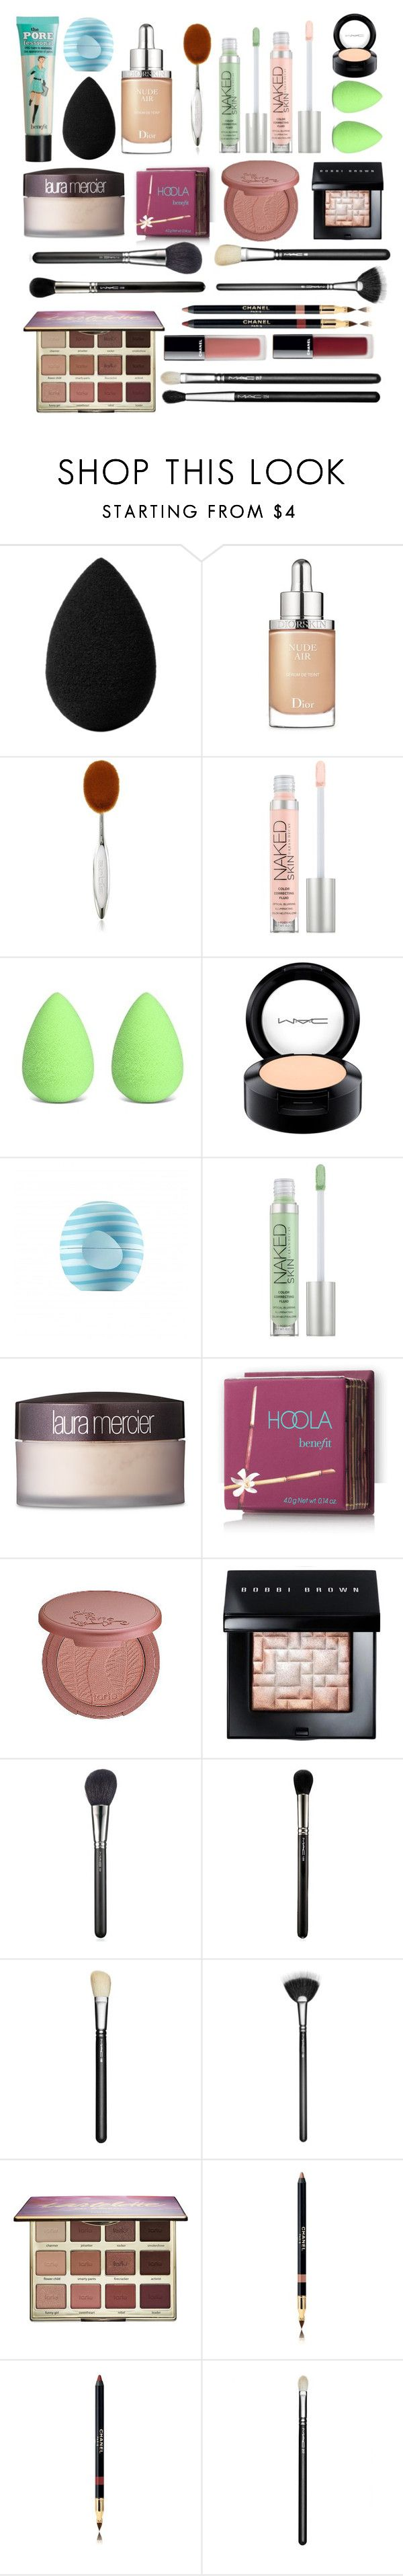 """Vacation Makeup Bag"" by lightbody-joanna on Polyvore featuring beauty, beautyblender, Christian Dior, Artis, Urban Decay, MAC Cosmetics, Eos, Laura Mercier, Hoola and tarte"